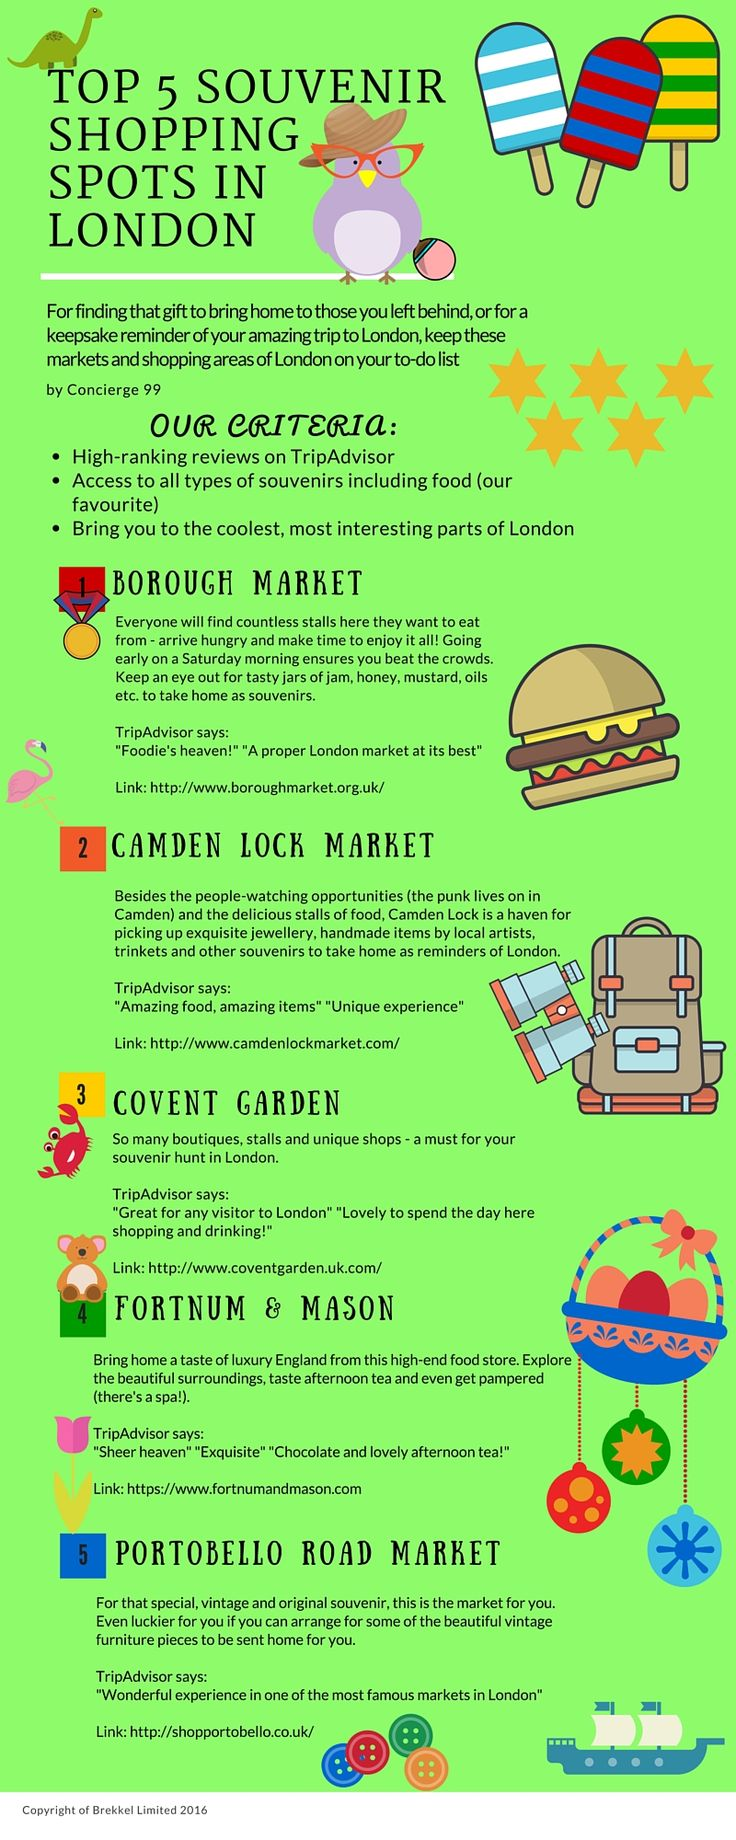 For finding that gift to bring home to those you left behind, or for a keepsake reminder of your amazing trip to London, keep these markets and shopping areas of London on your to-do list.  Top 5 Guide  Best Souvenir Shopping Spots in London Best Things to Do in London Best Things to See in London Best of Where to Go in London